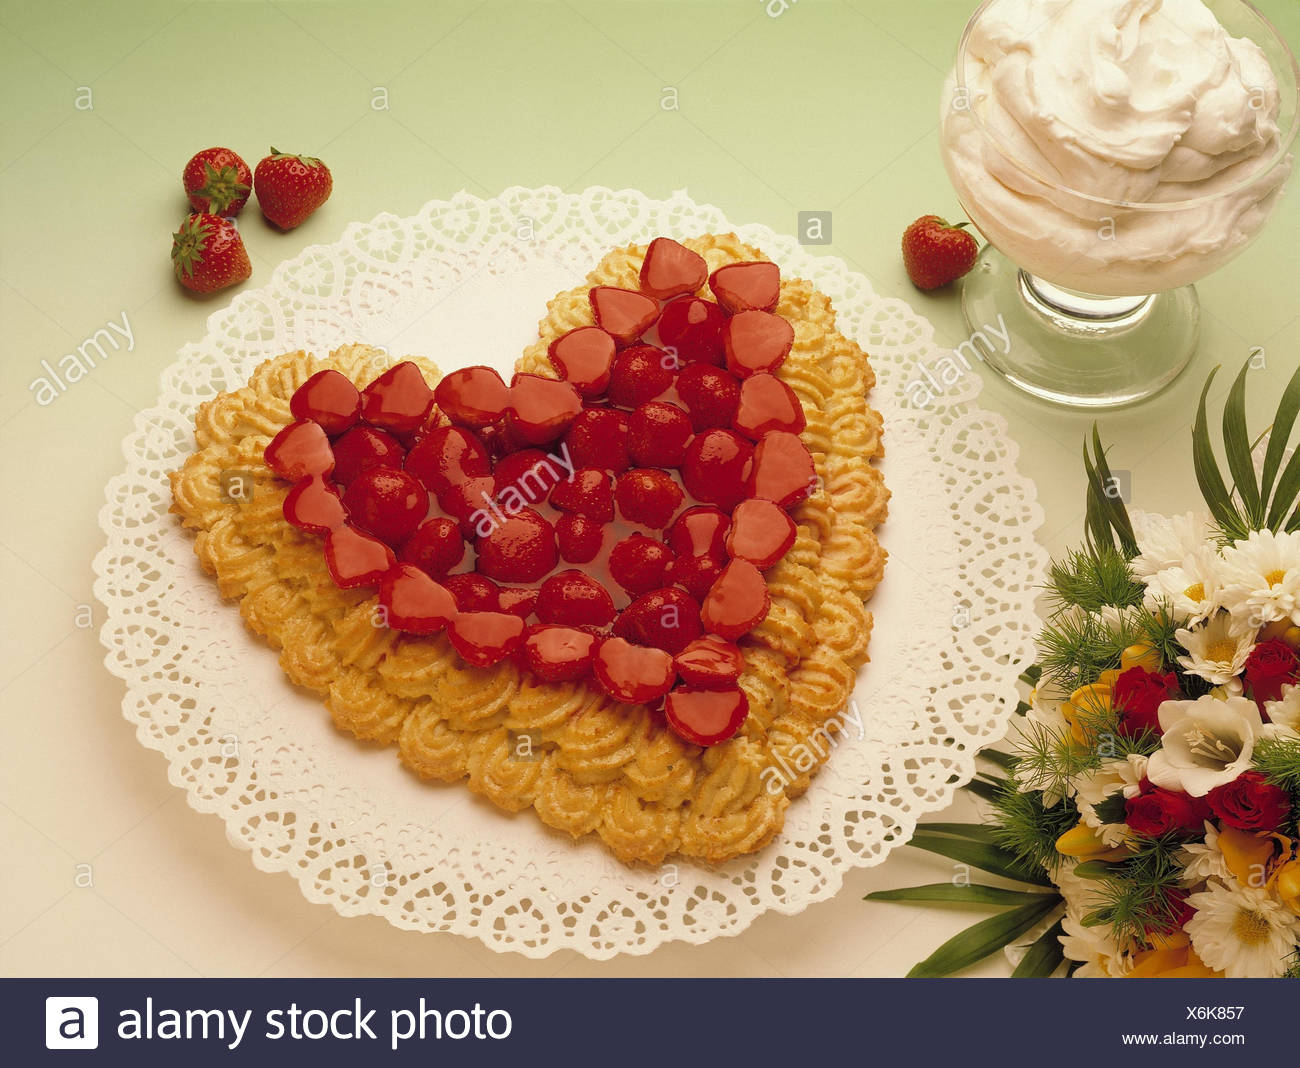 Strawberry cake heart shaped whipped cream bouquet cake cake strawberry cake heart shaped whipped cream bouquet cake cake strawberries fruit flans flowers sweet dessert cream birthday cake love heart izmirmasajfo